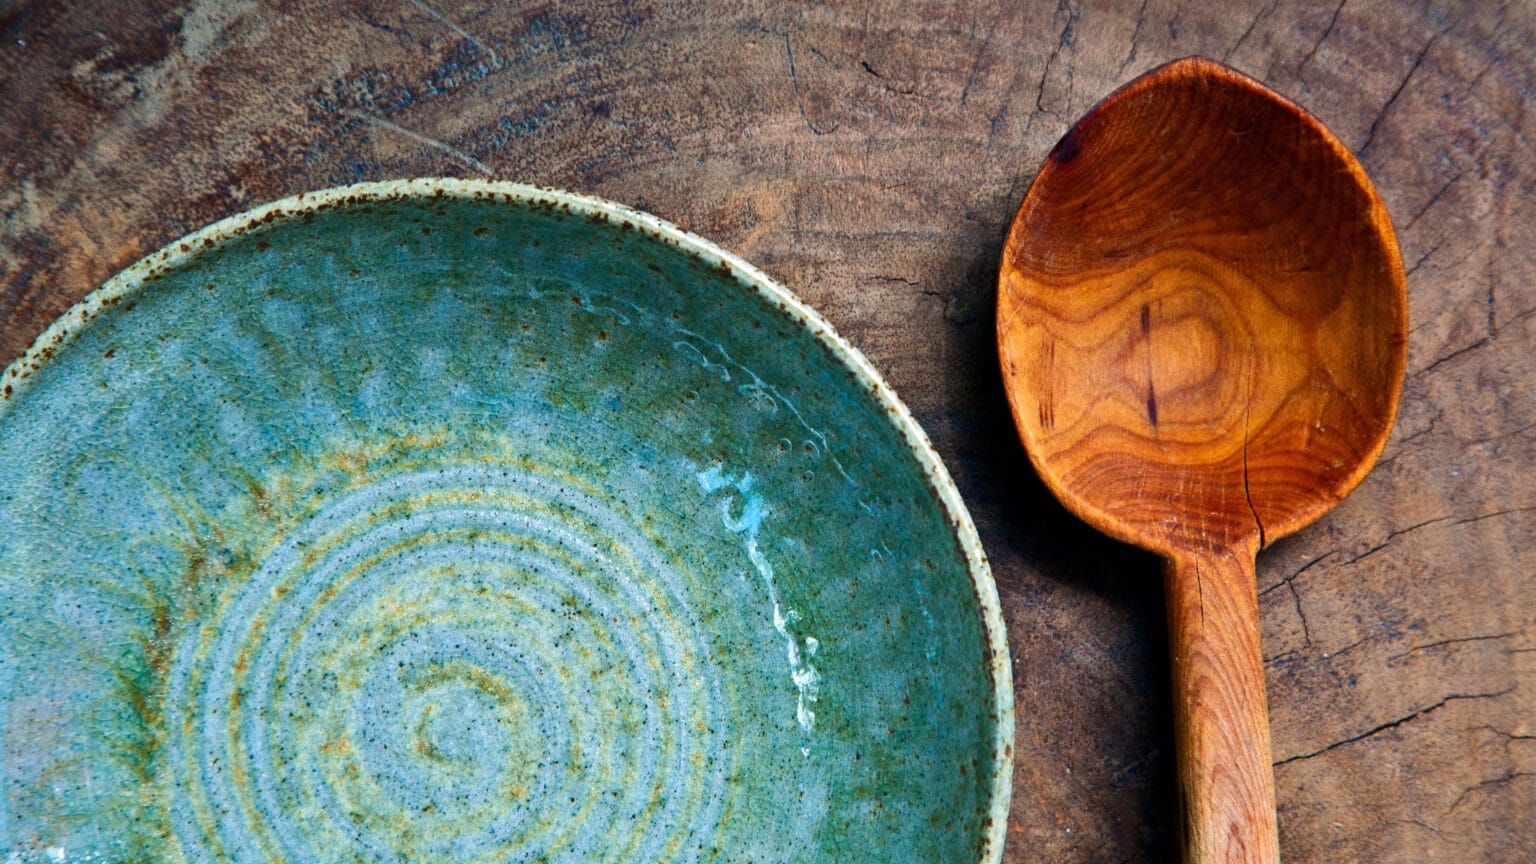 Ceramics, Porcelain and Other Clay Materials